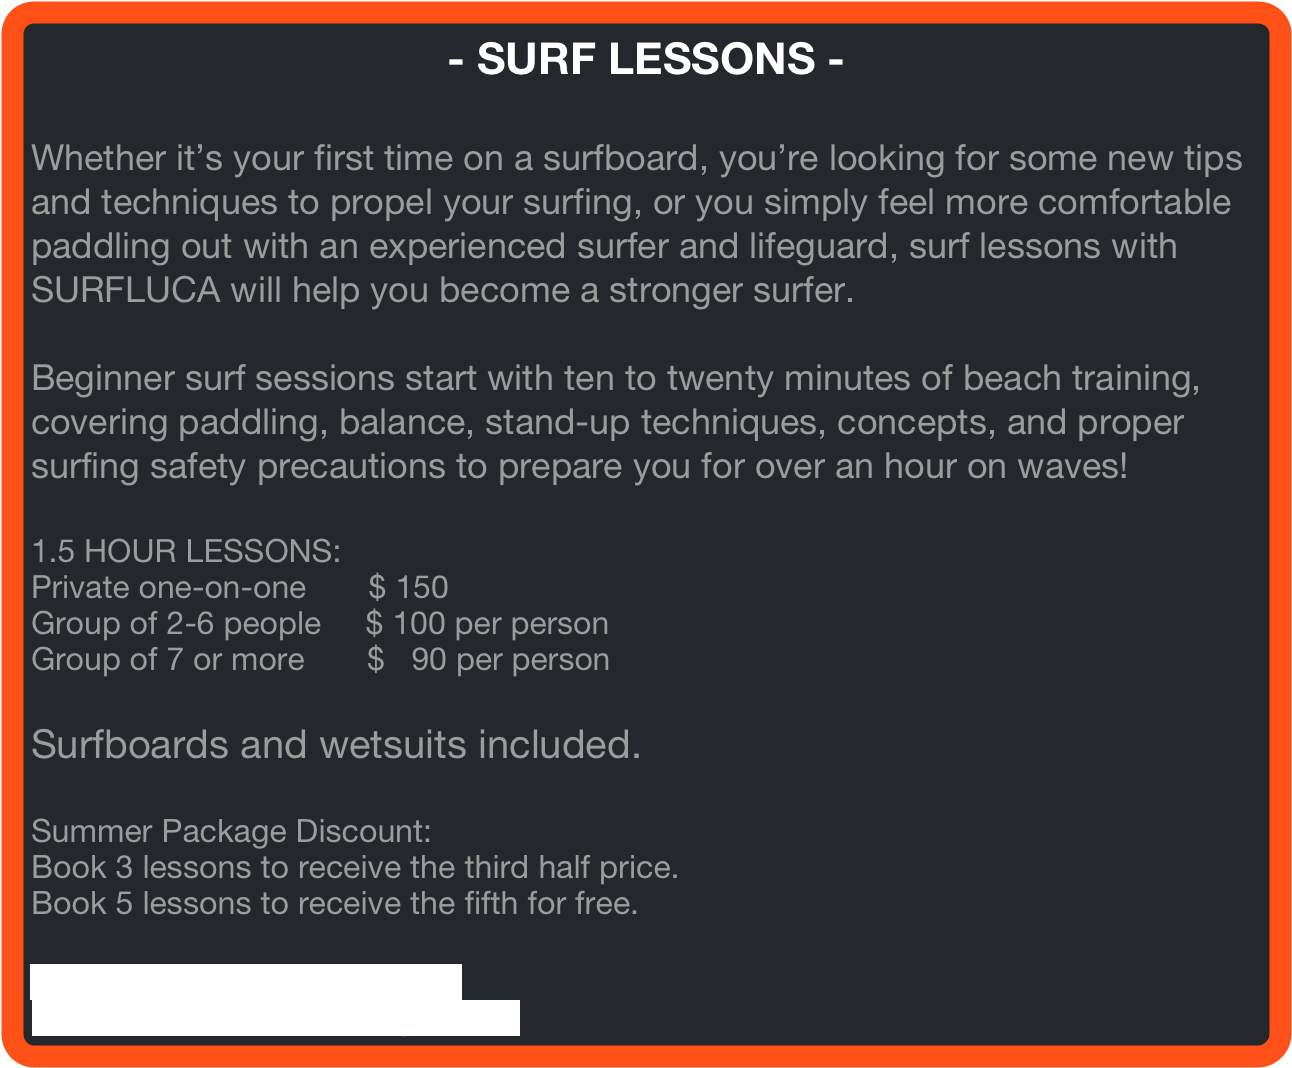 - SURF LESSONS -